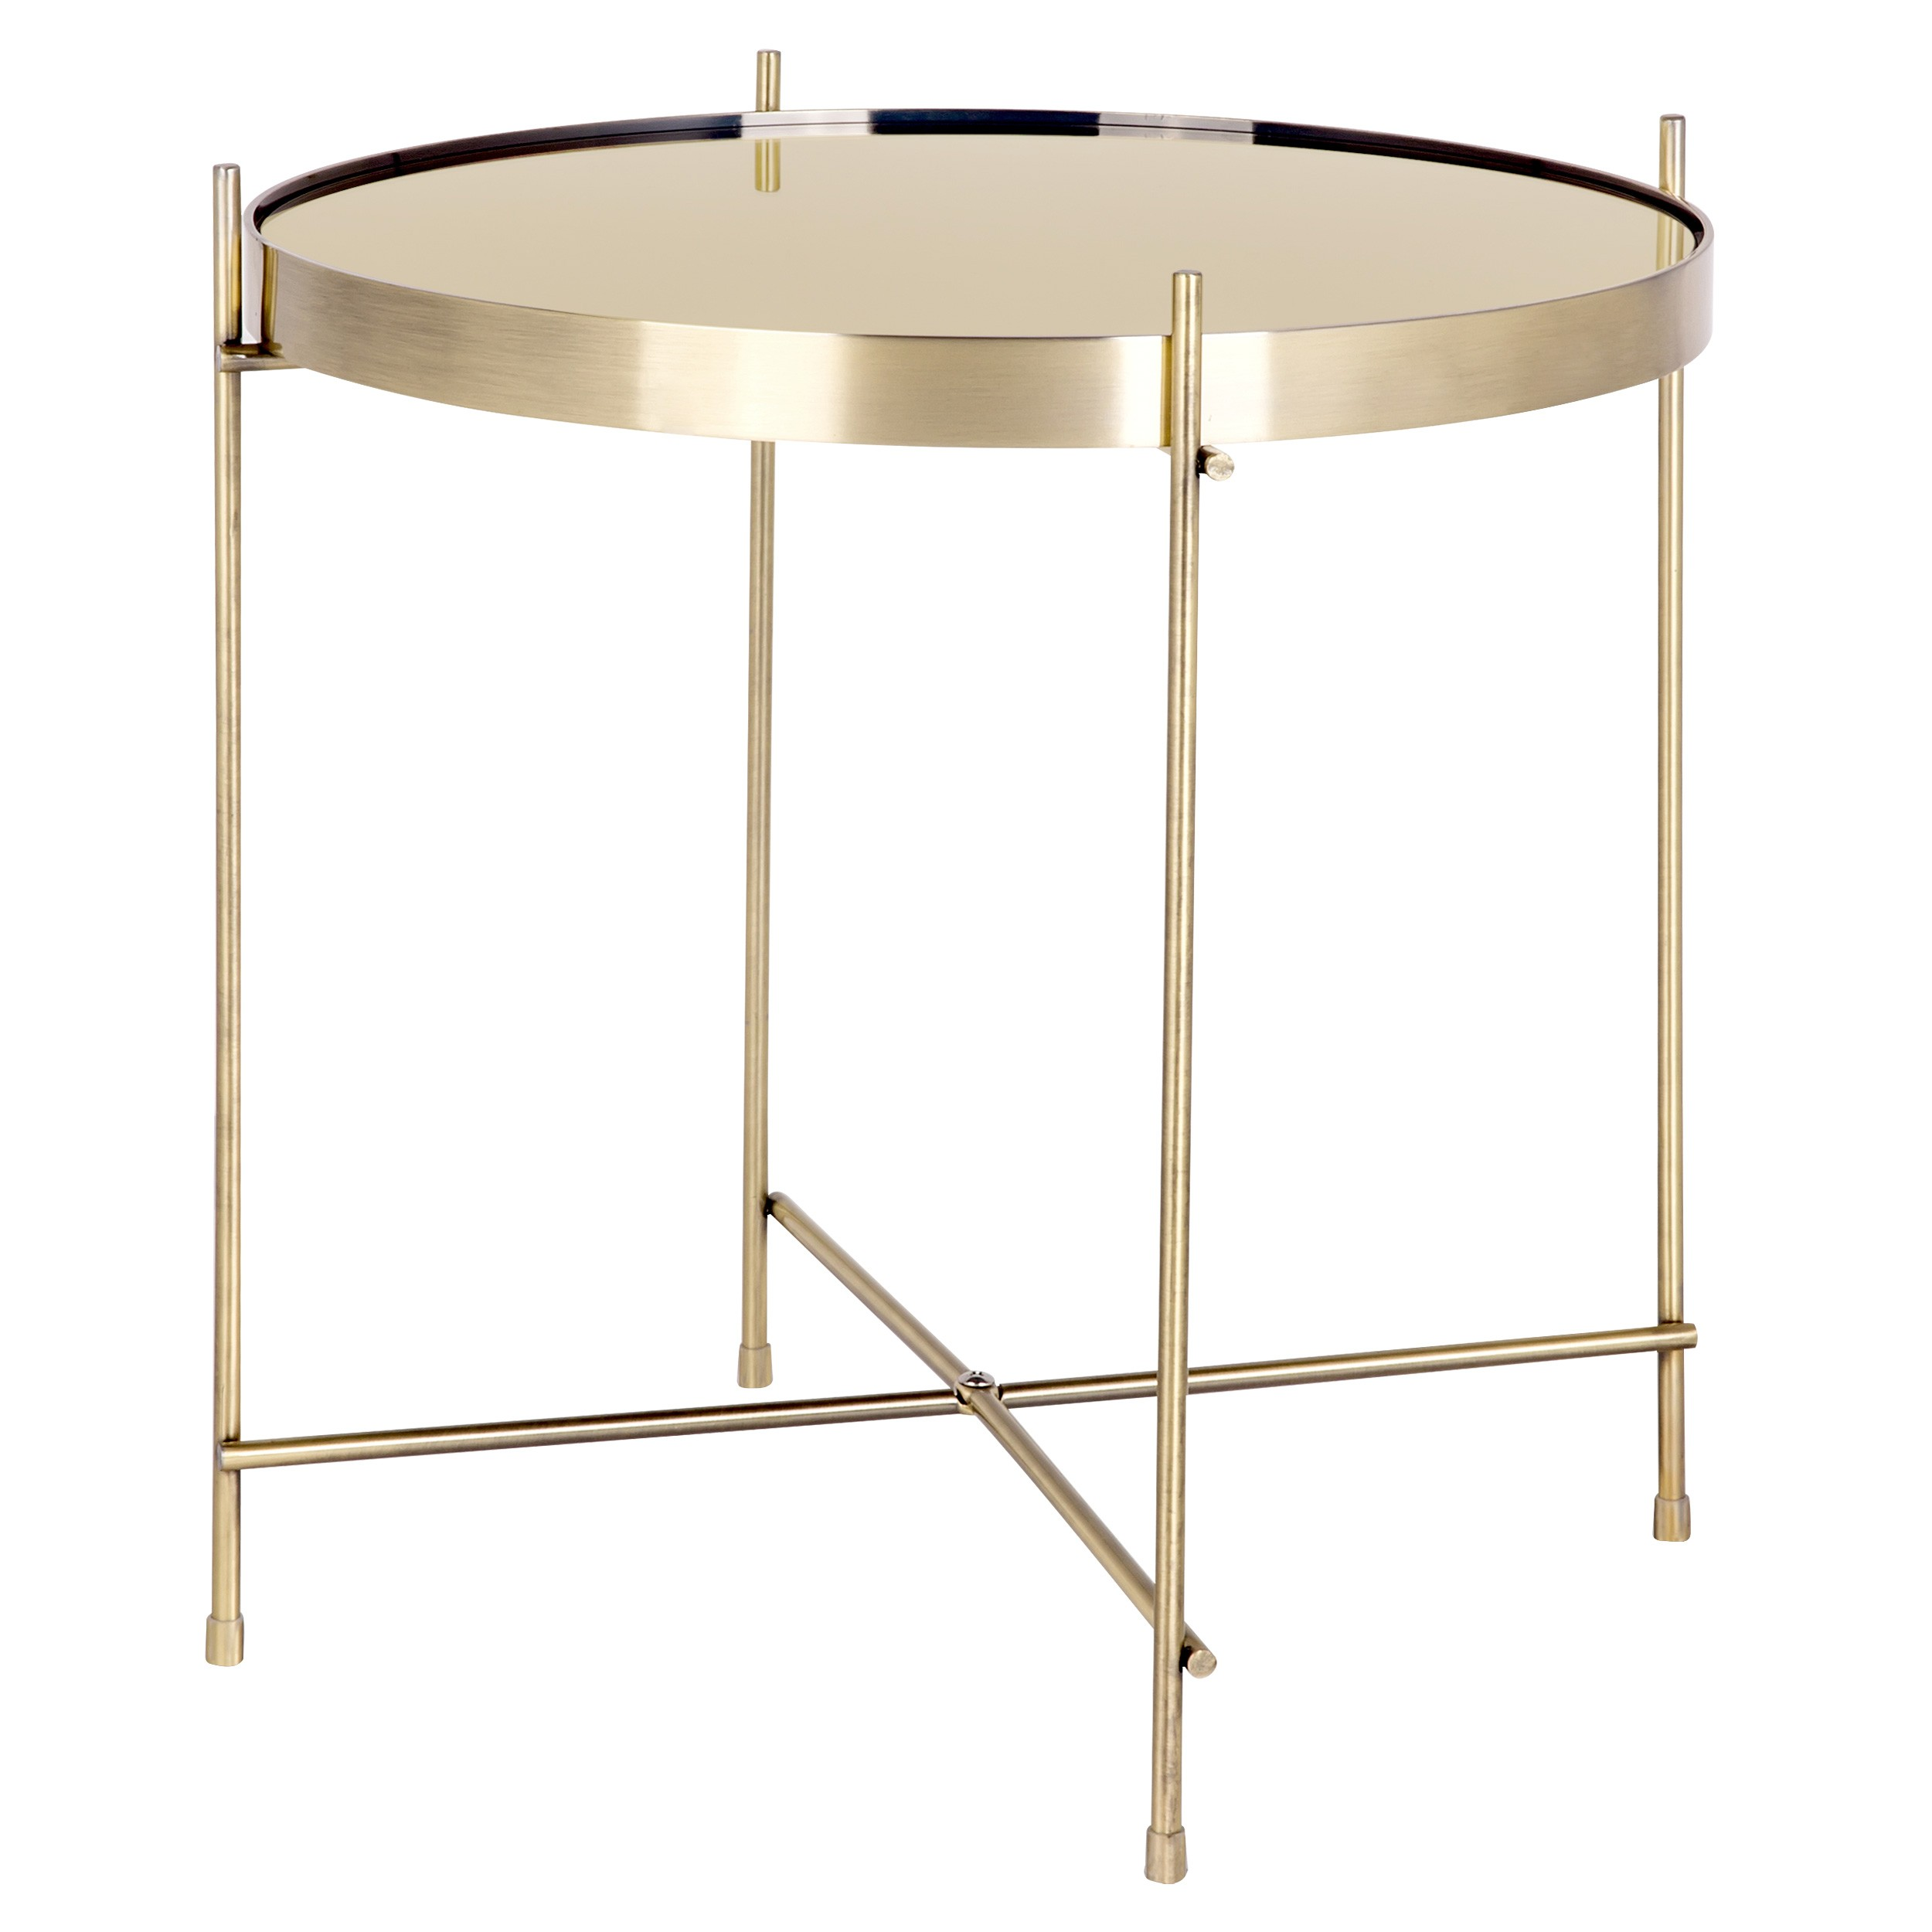 Taille Table Basse Table Basse Ronde Valdo Or S Achetez Nos Tables Basses